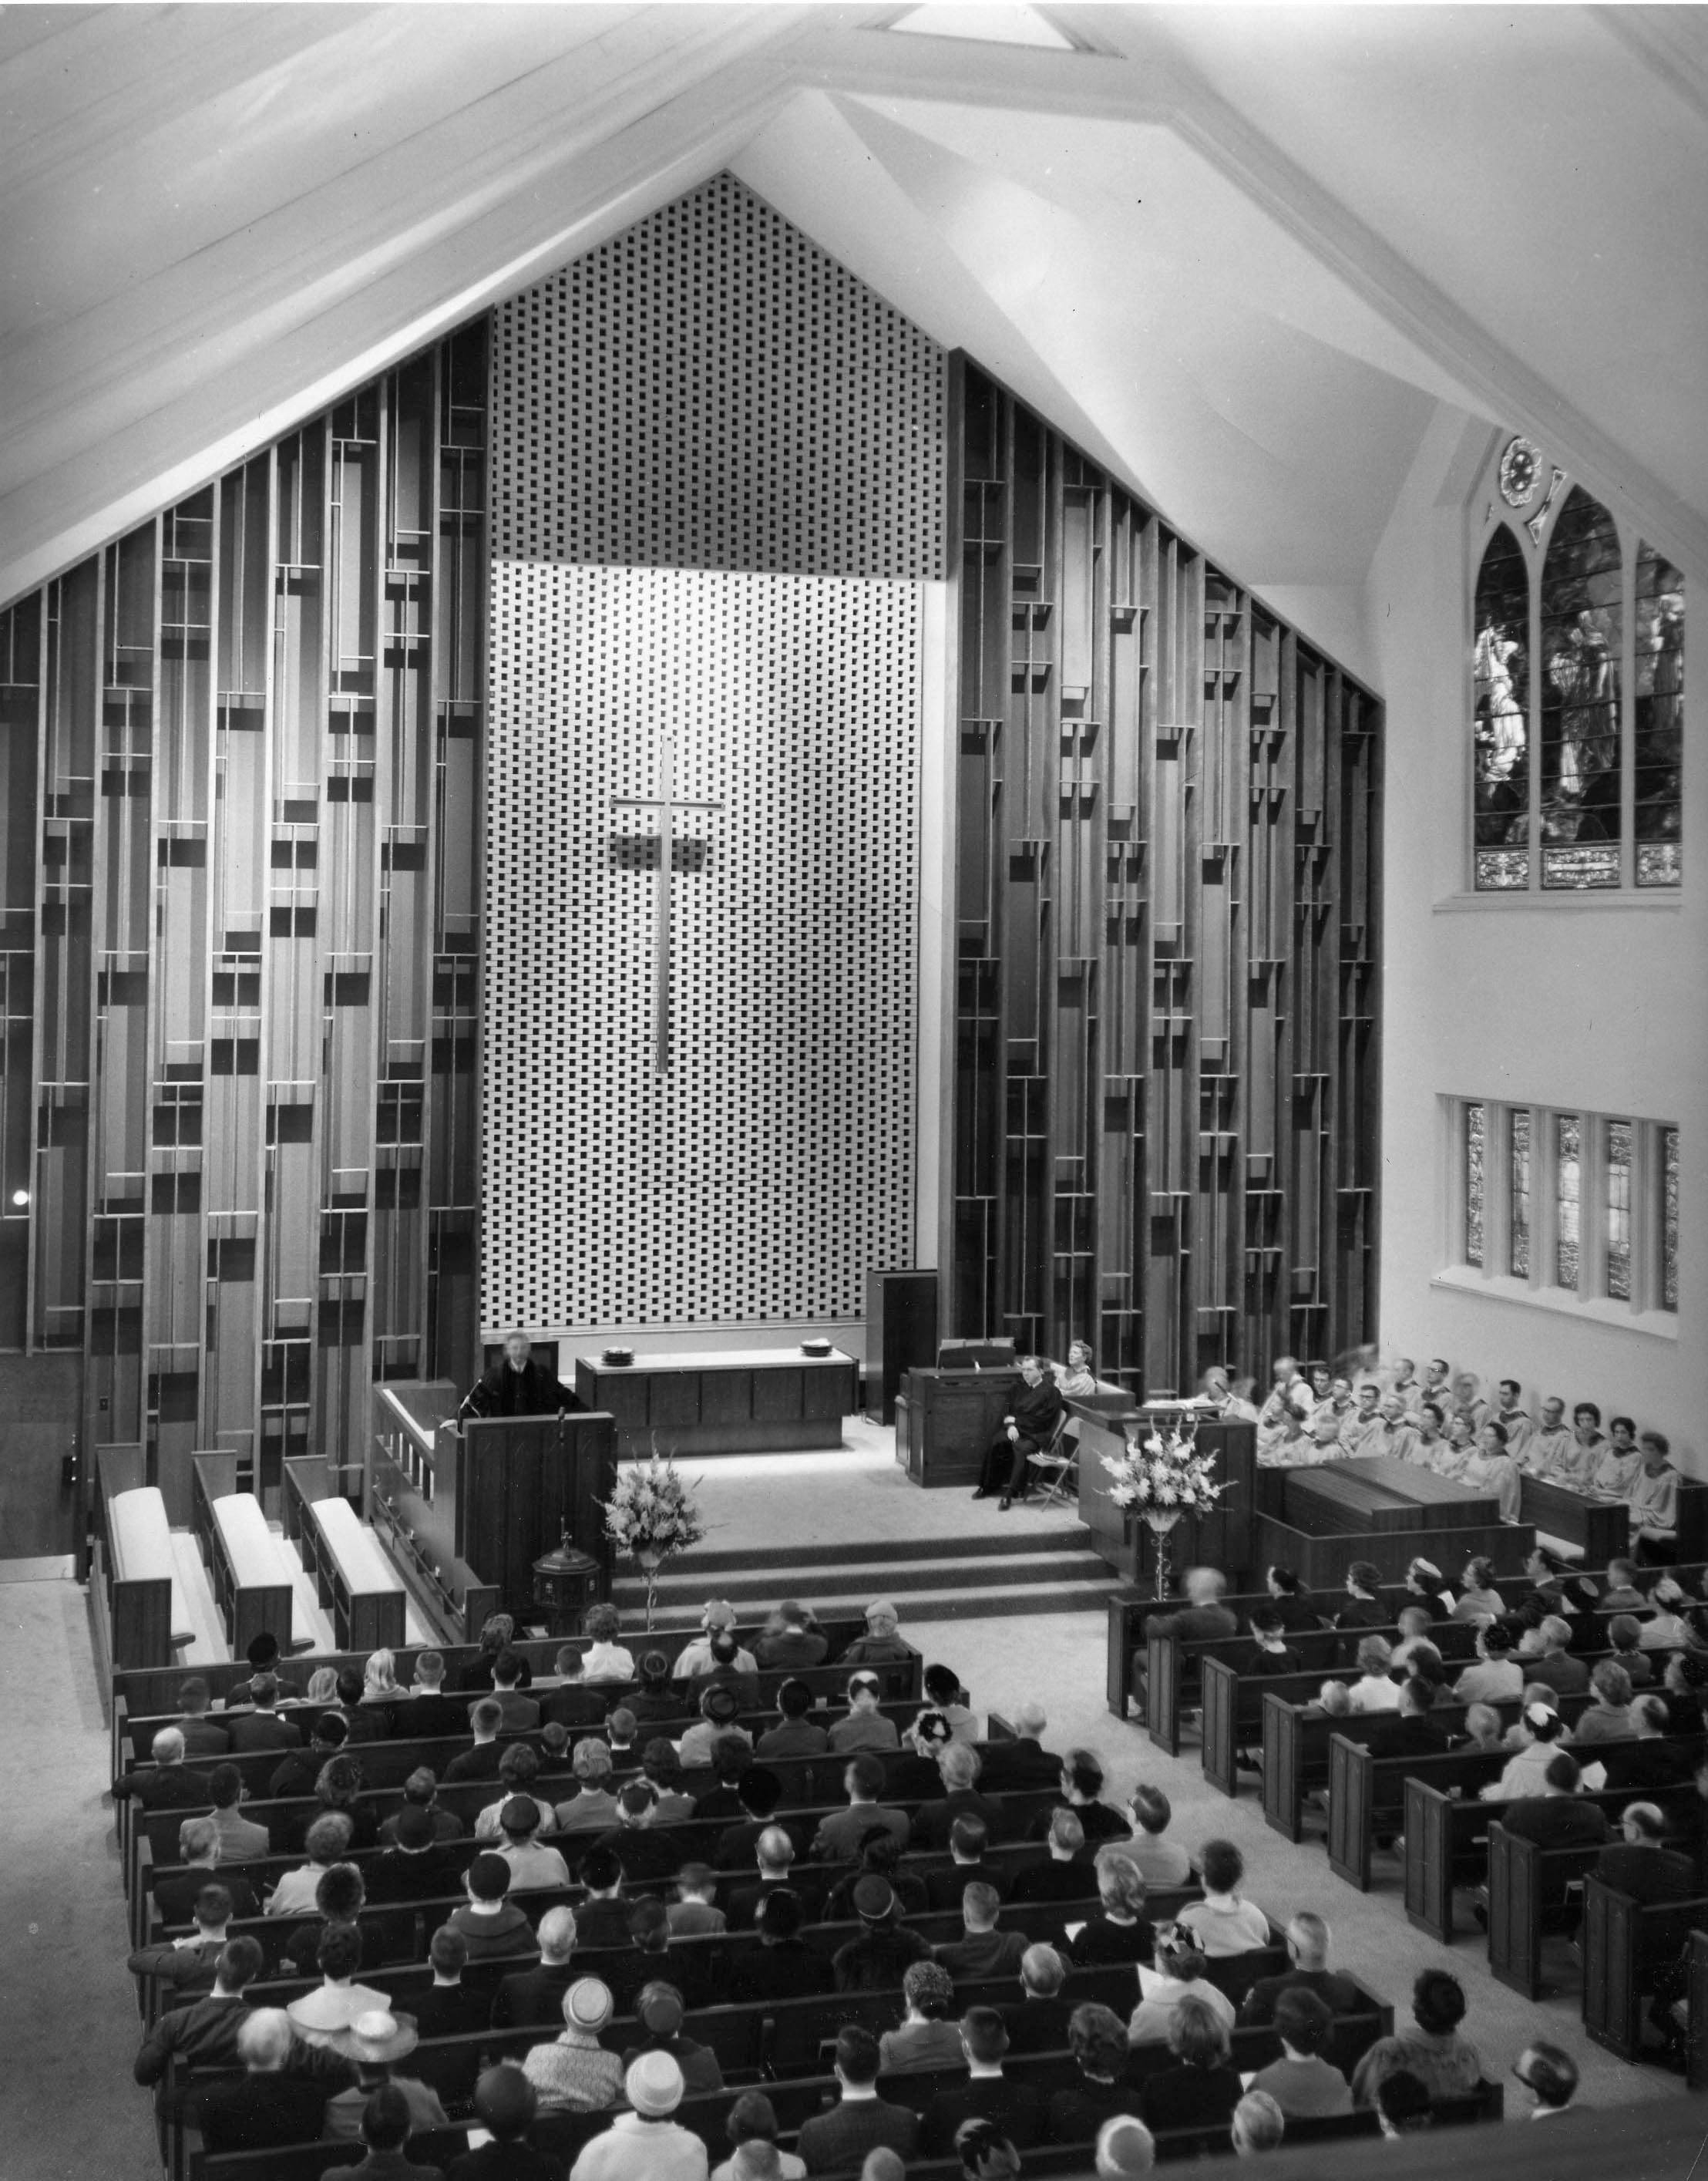 image of sanctuary in 1950